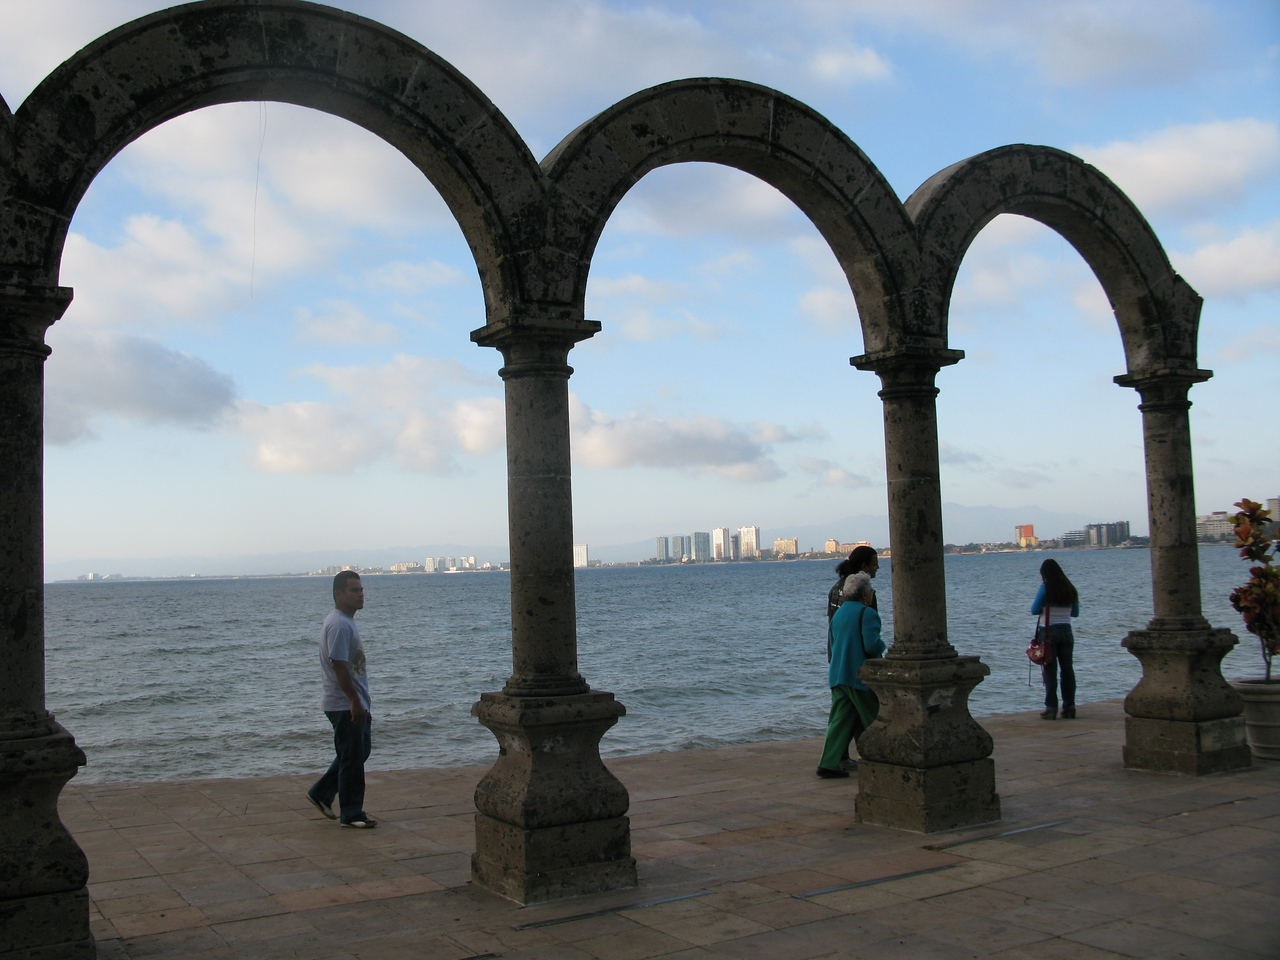 My first evening, strolling along the Malecon, seeing Nuevo Vallarta framed in the aches of the Romantic Zone.